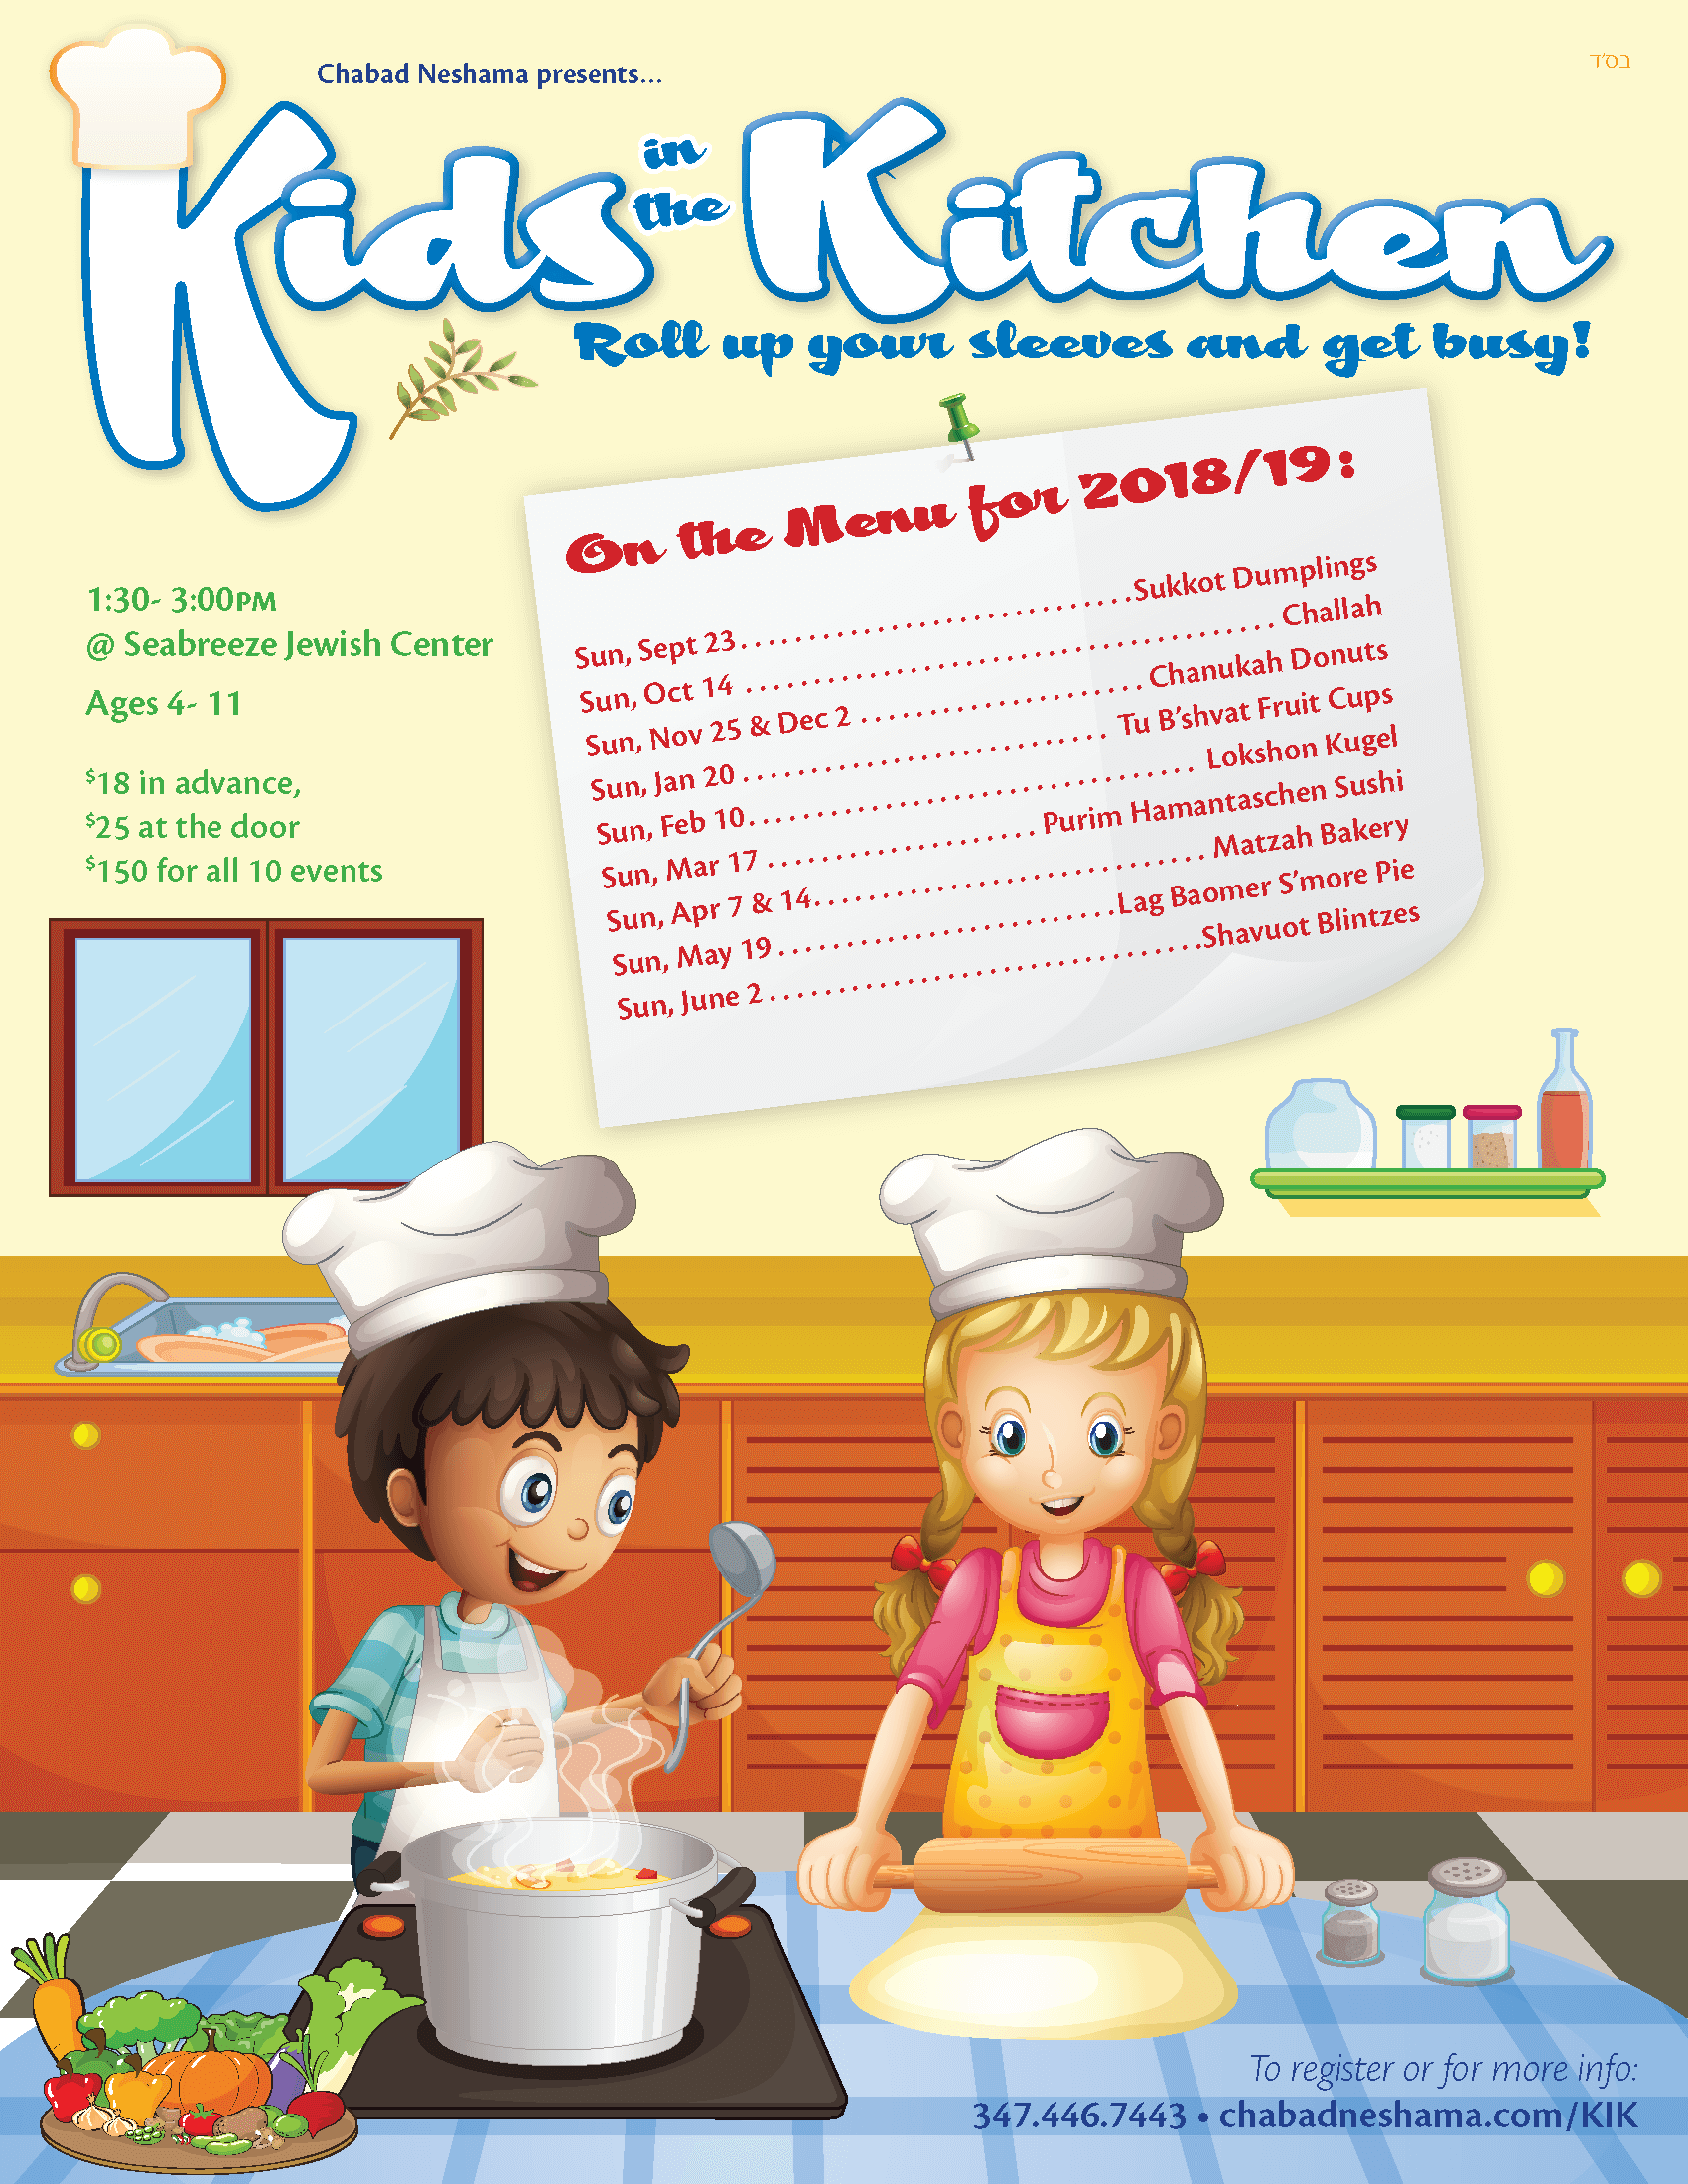 kids in the kitchen flyer 5779 no bleed.png